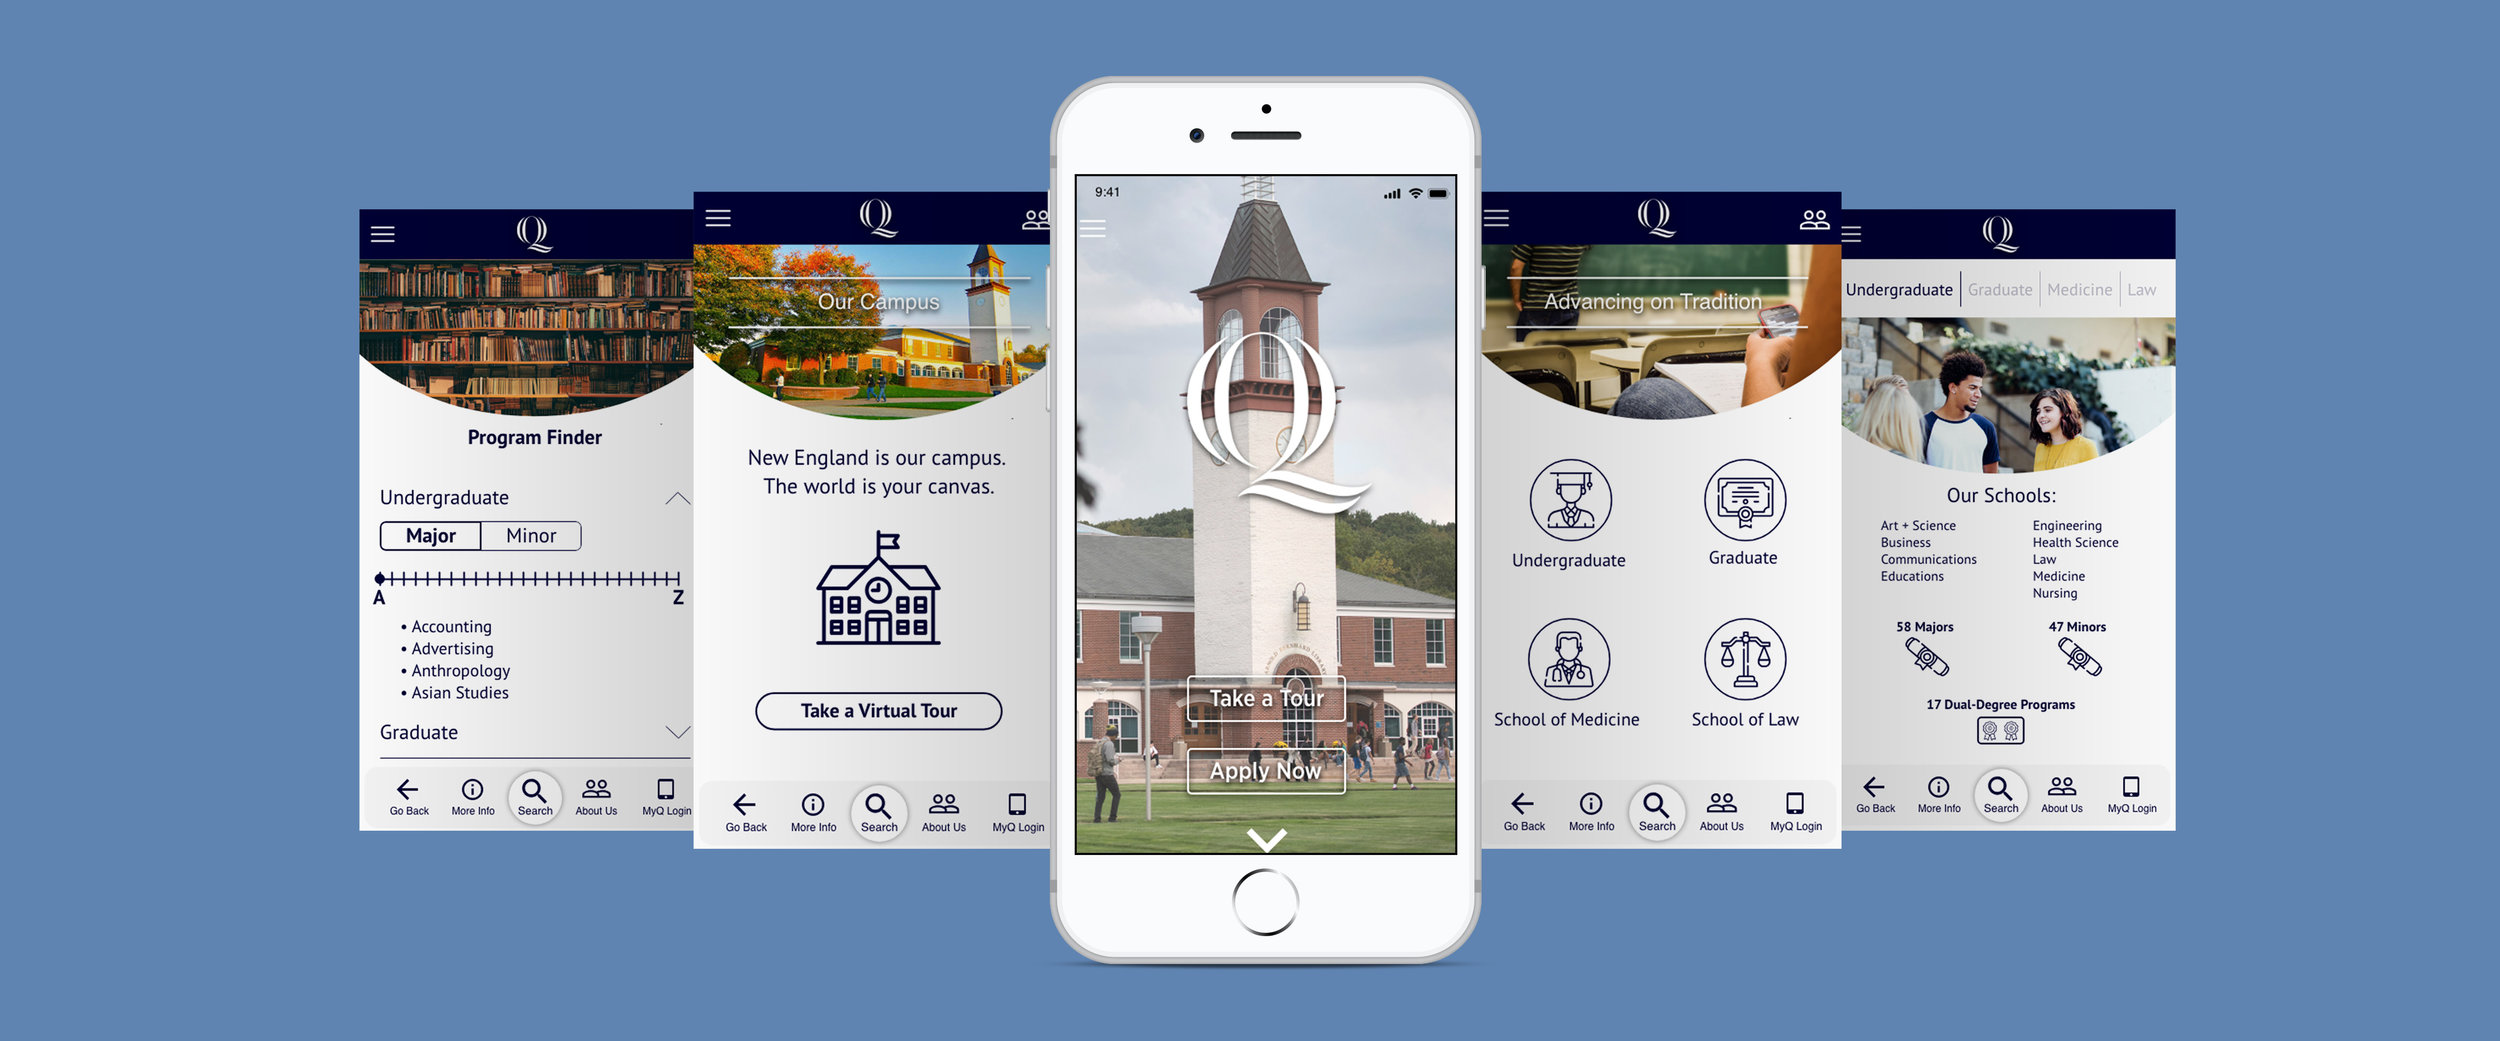 Quinnipiac Mobile App Design - Full Project